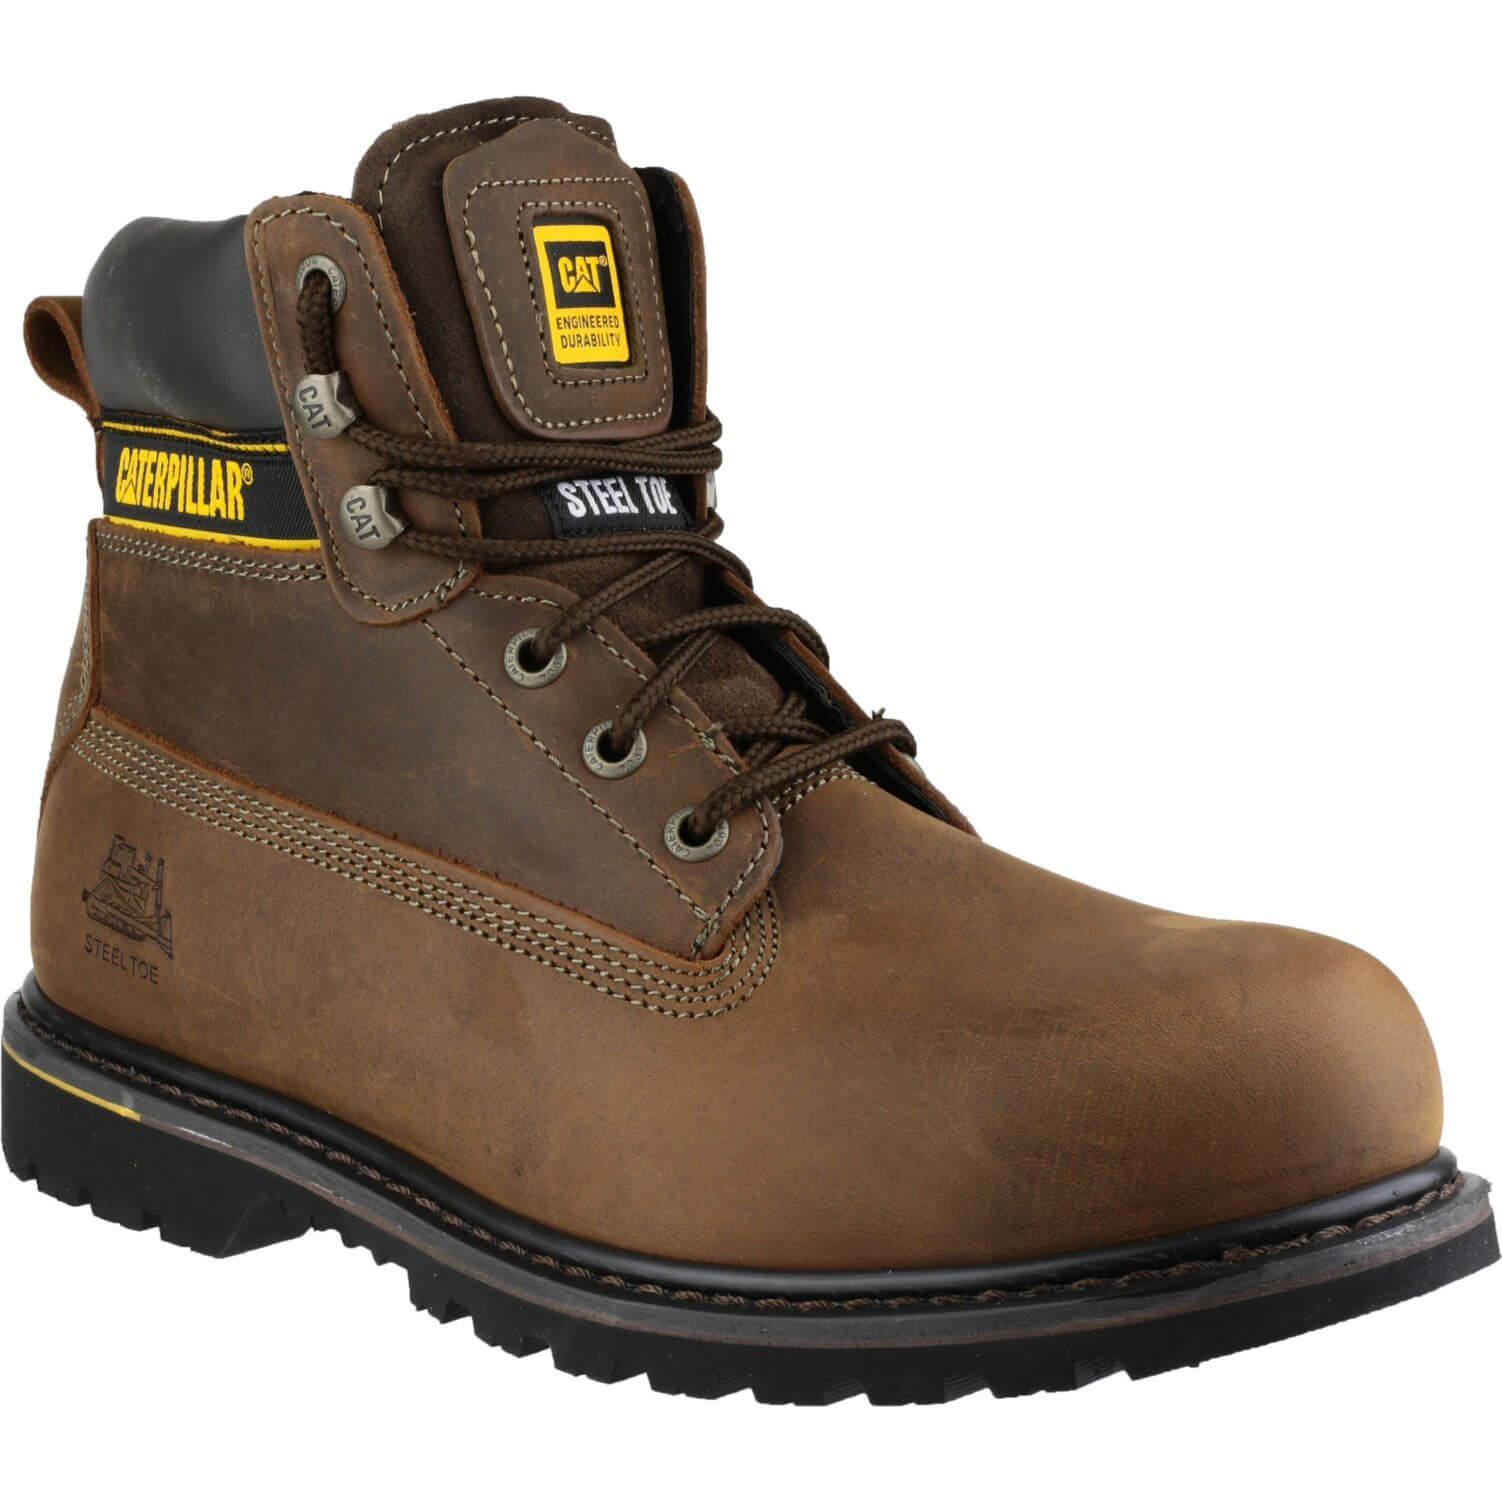 Caterpillar Mens Holton Safety Boots Brown Size 14